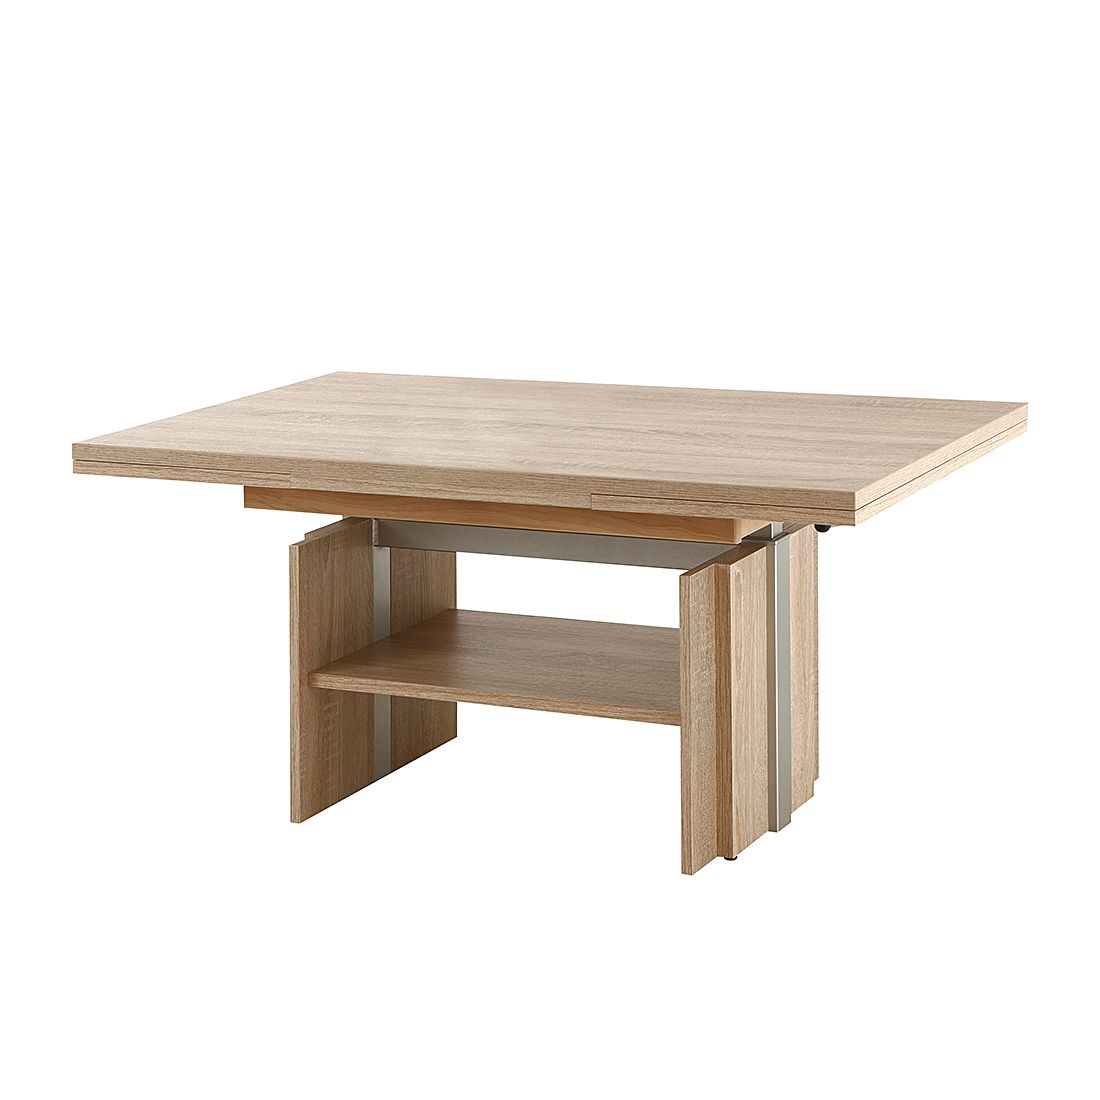 Table basse Beate (extractible) - Imitation chêne Sonoma, Modoform